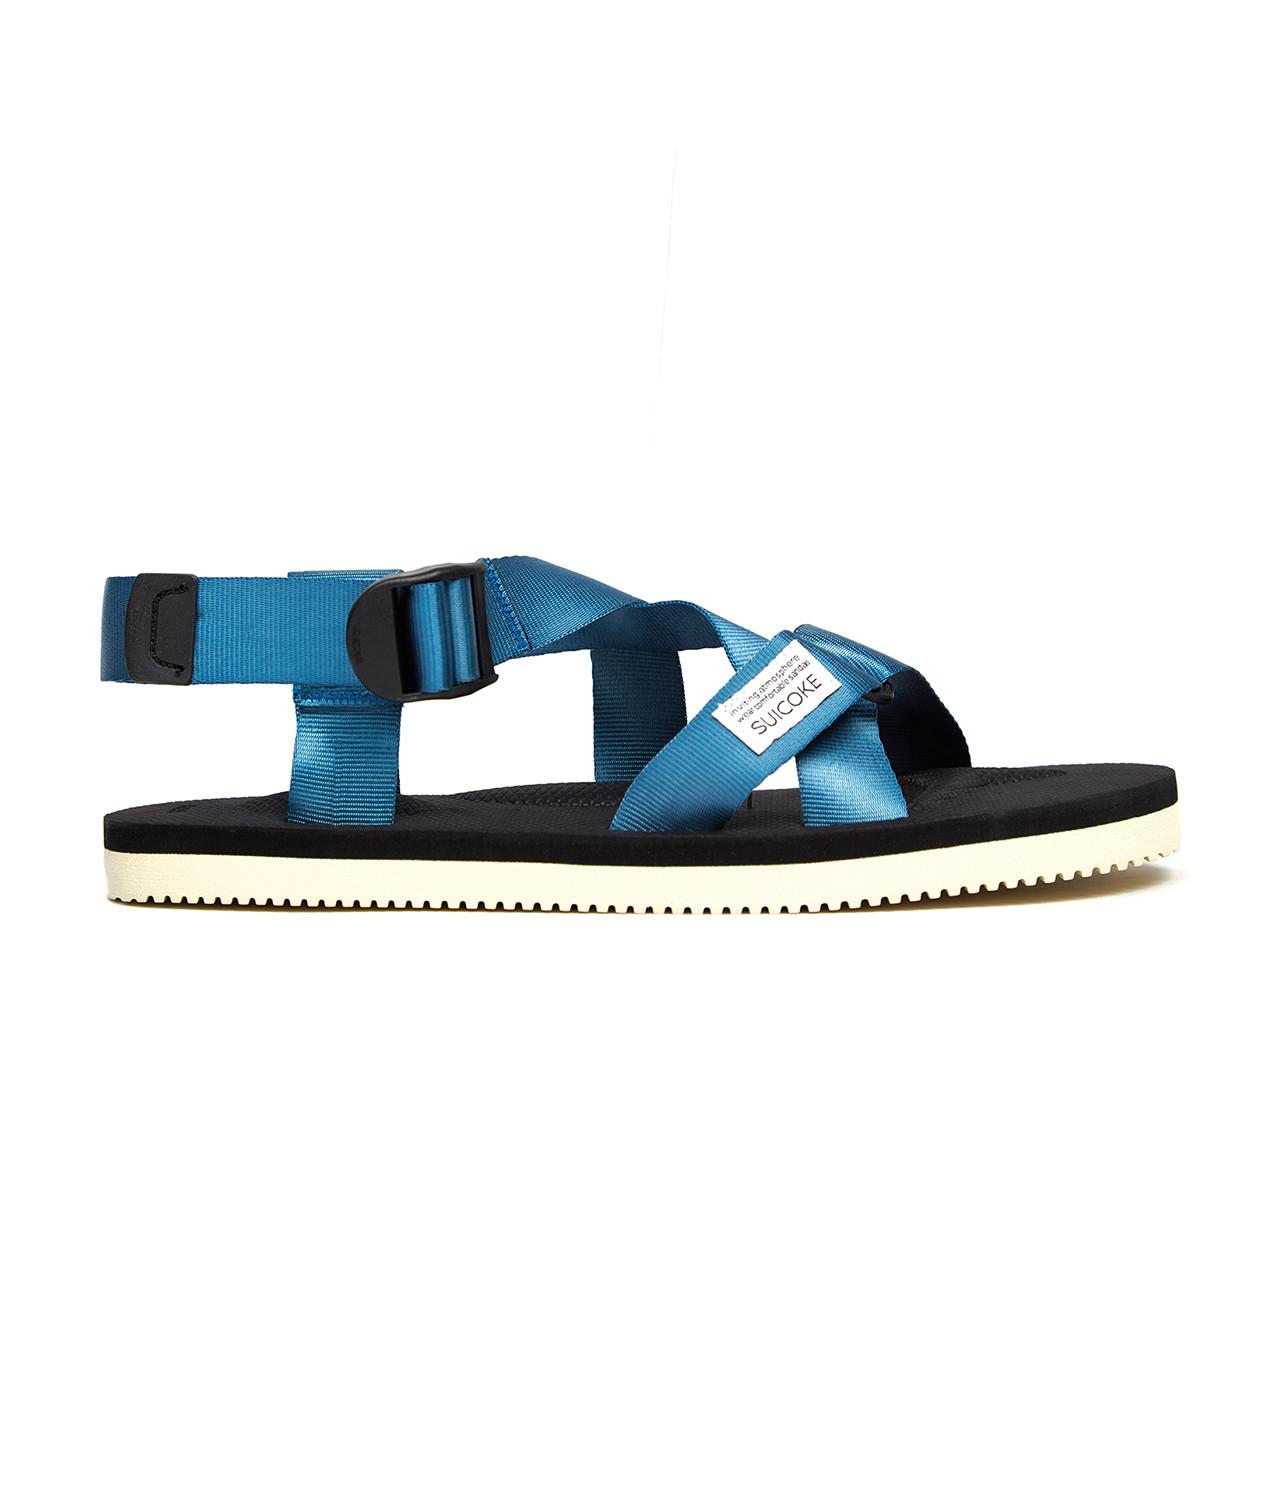 1a8a61212ef Suicoke - Blue Chin2 for Men - Lyst. View fullscreen